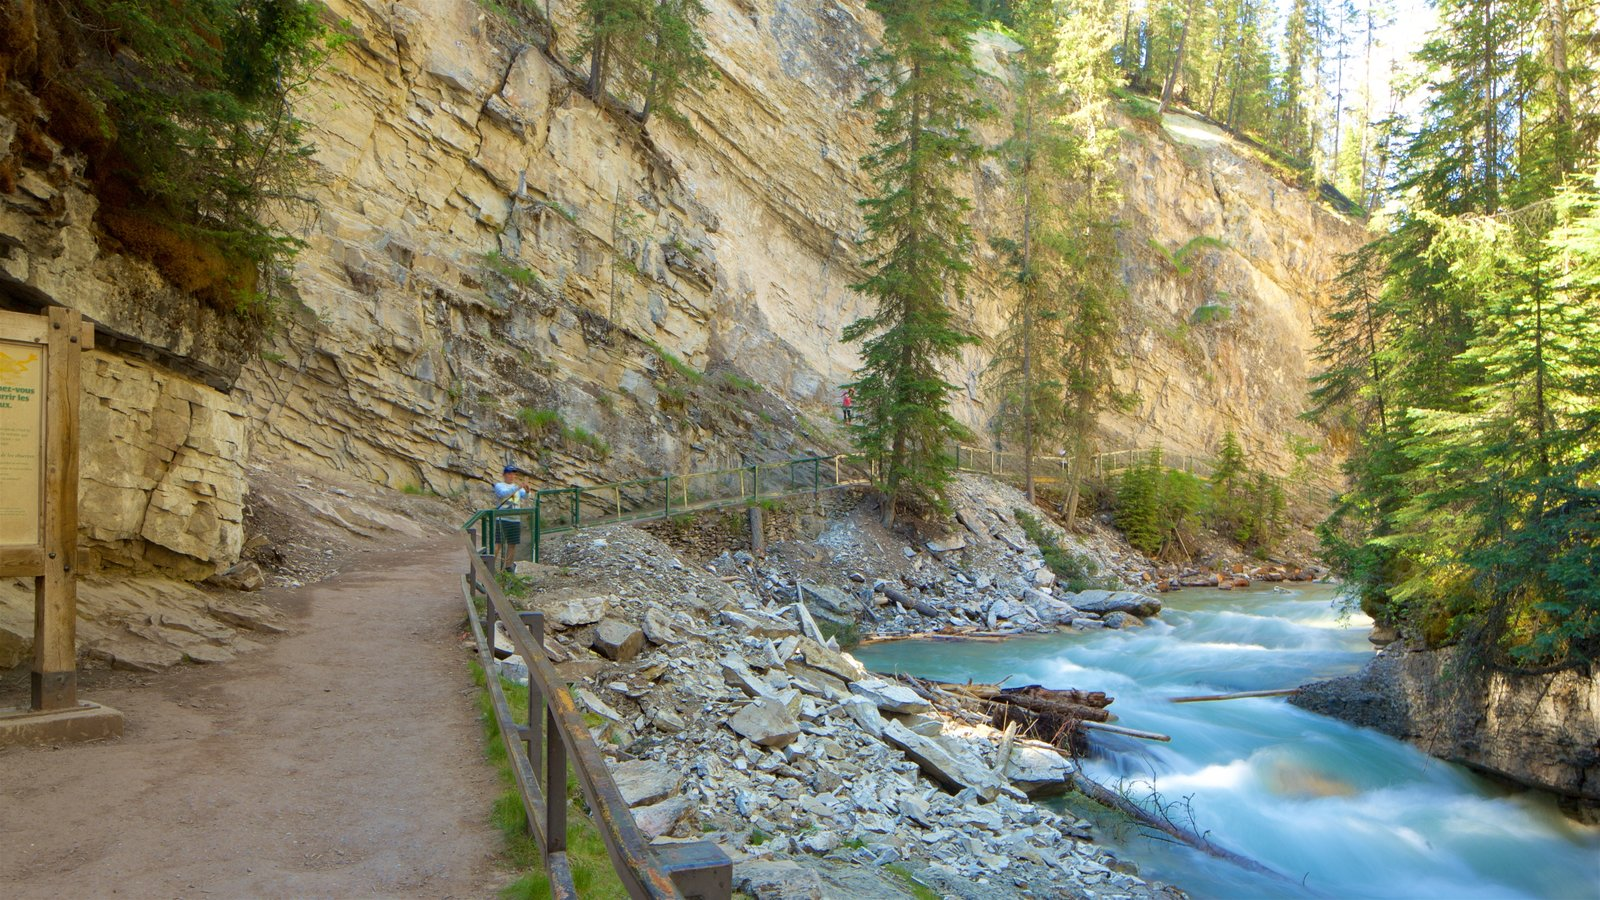 Johnston Canyon showing a gorge or canyon and a river or creek